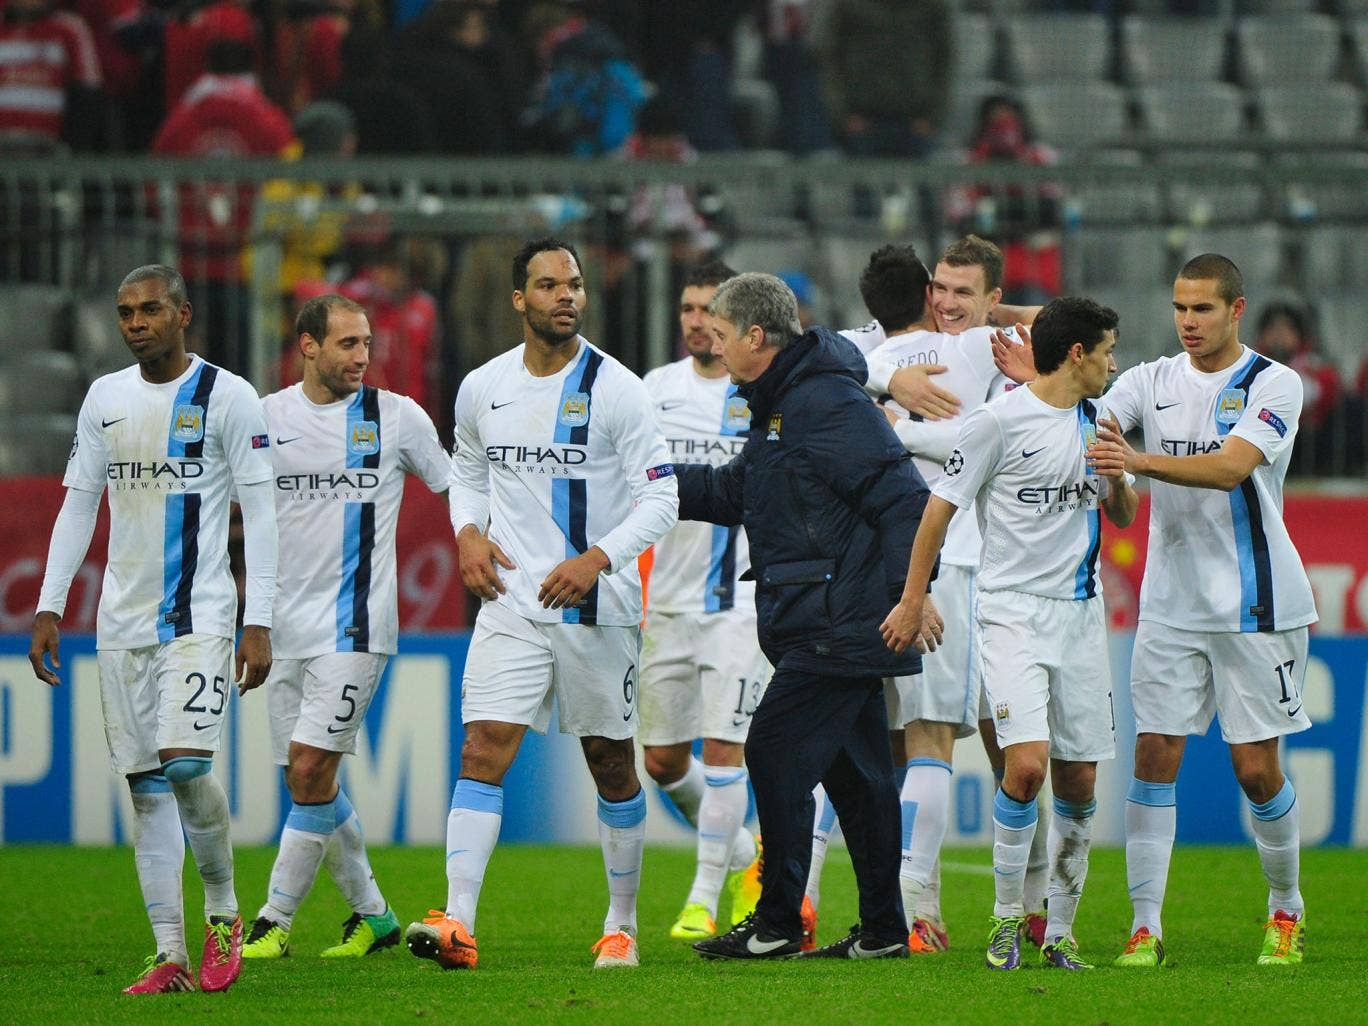 Manchester City manager Manuel Pelegrini congratulates his players after their successful 3-2 victory over Champions League holders Bayern Munich